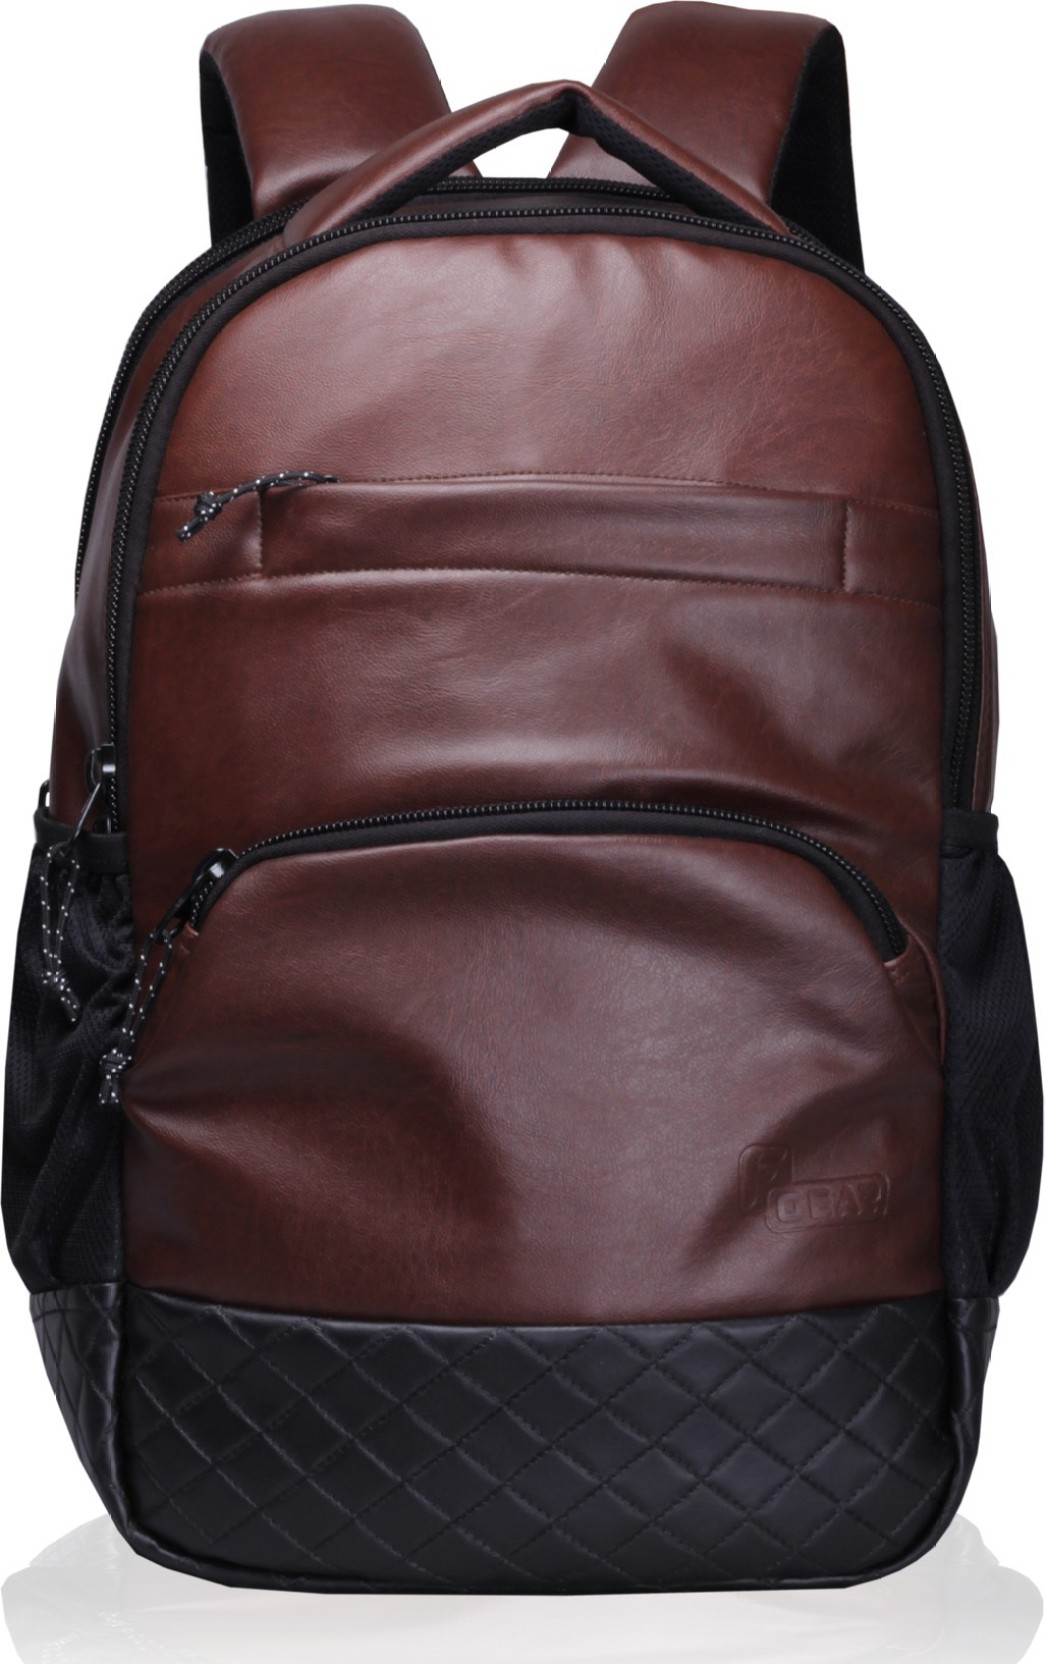 Uber Customer Care Number >> F Gear Luxur 25 L Backpack Brown - Price in India ...